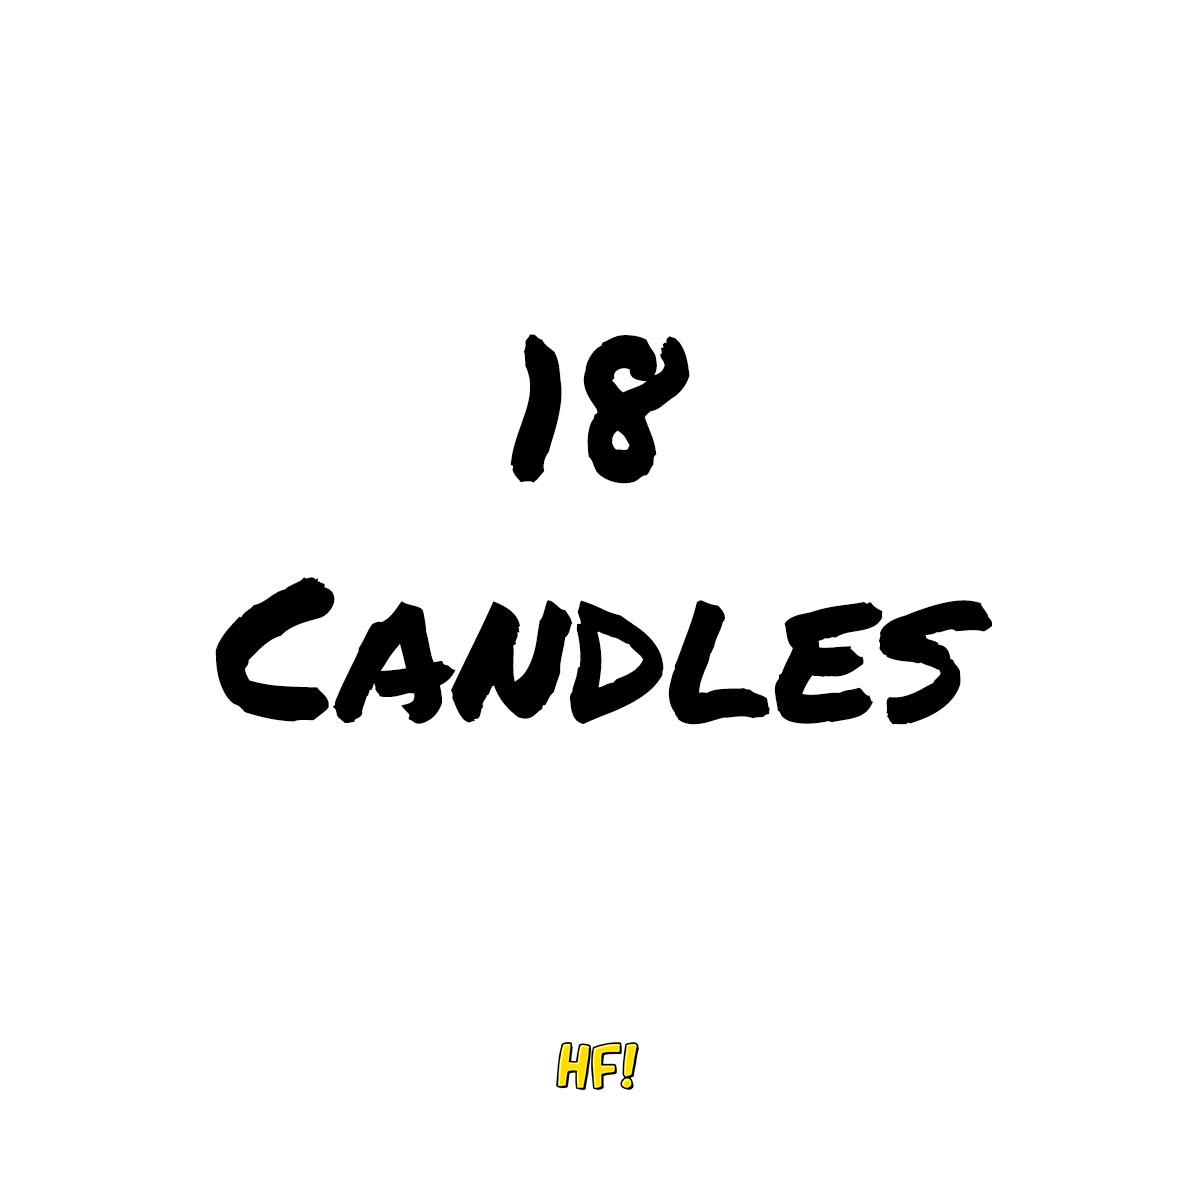 Hey-Francis-PI-Debut-Title-18 Candles.jpg